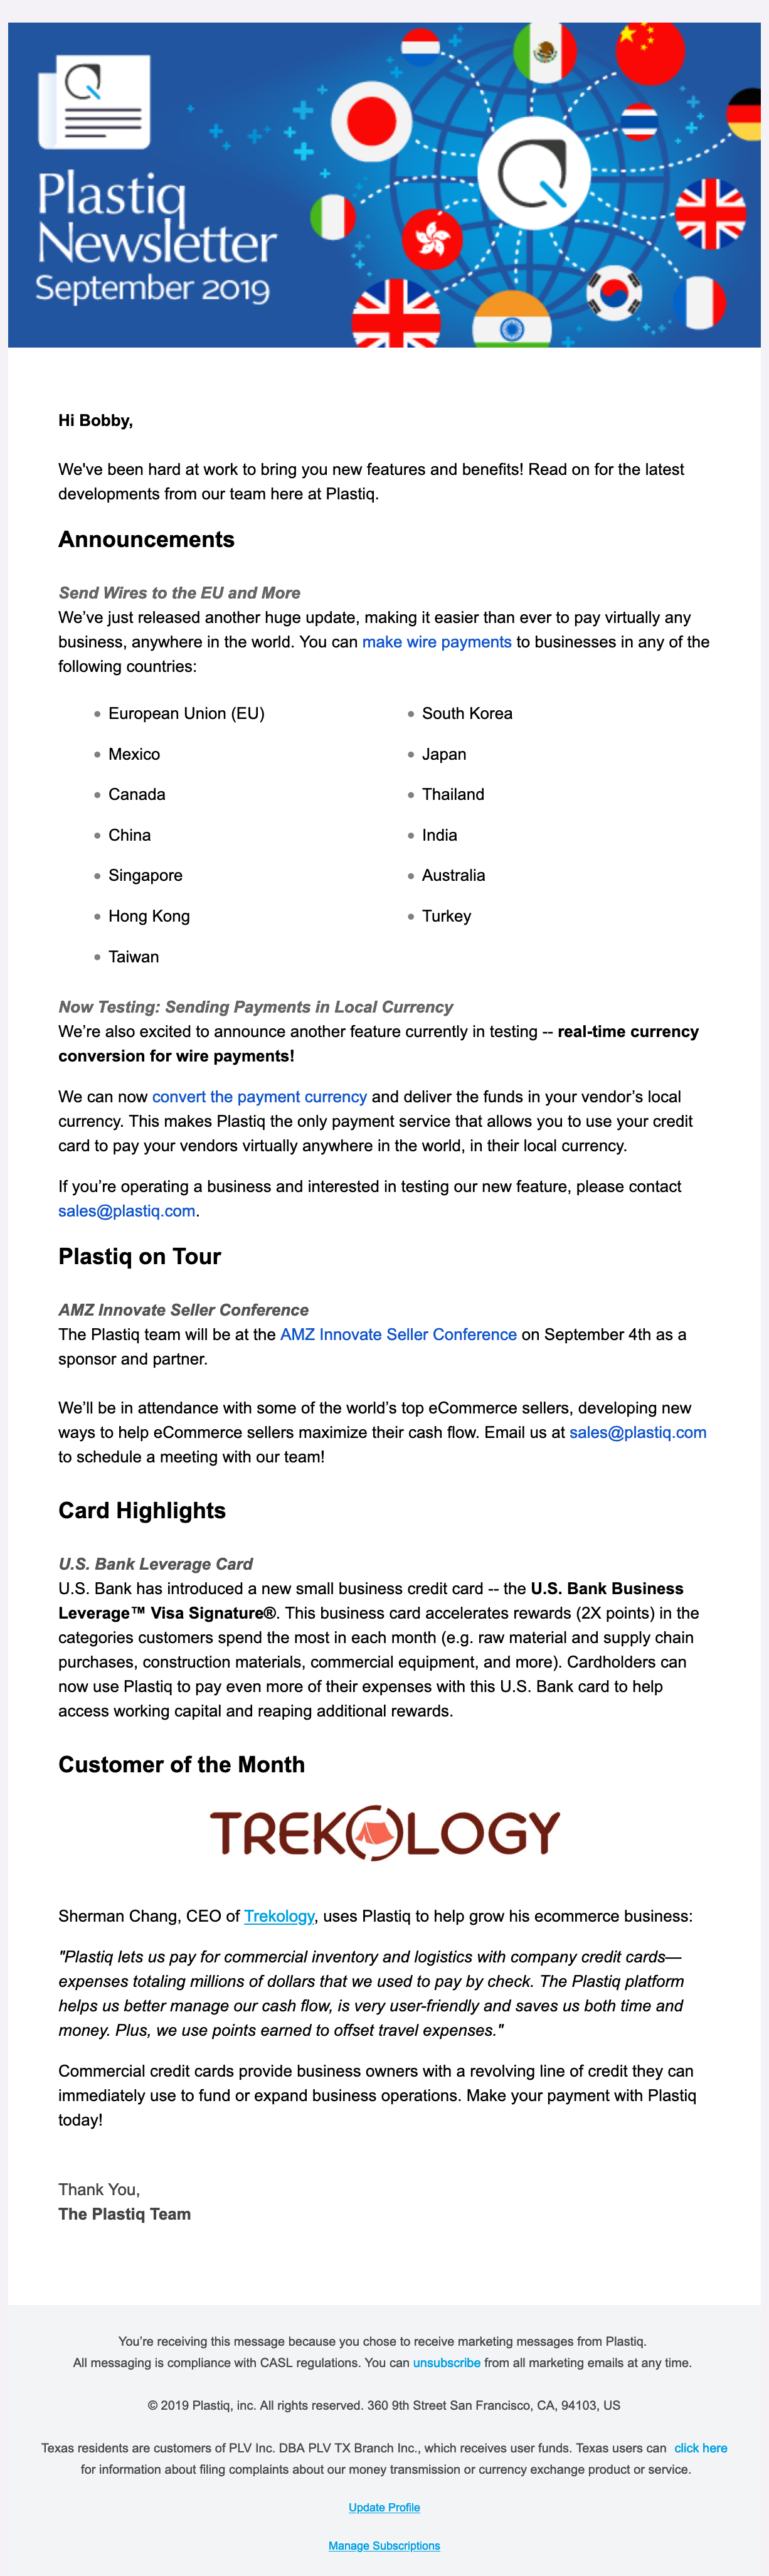 Plastiq Sept 2019 Newsletter